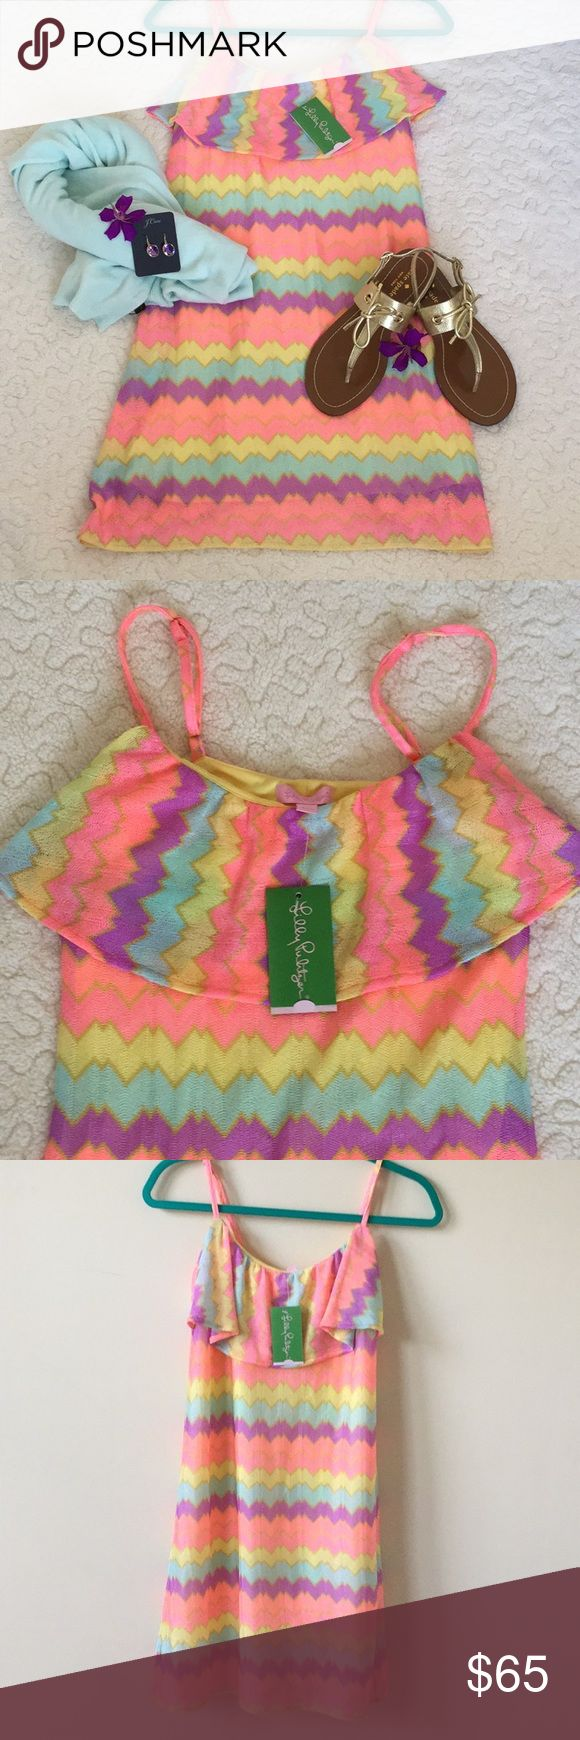 "🌸SALE$56🌸Lilly Pulitzer Laya Dress NWT Fun and flirty Lilly Pulitzer dress in multicolored chevron stripe.  Pink, yellow, peach, aqua and lavender... such vibrant, happy colors! Adjustable spaghetti straps, flounce on front yoke. Fully lined. 100% polyester. Length from underarm to hem 28"". Never worn, new with tags! So cute!! Was $65 now $56 Lilly Pulitzer Dresses"